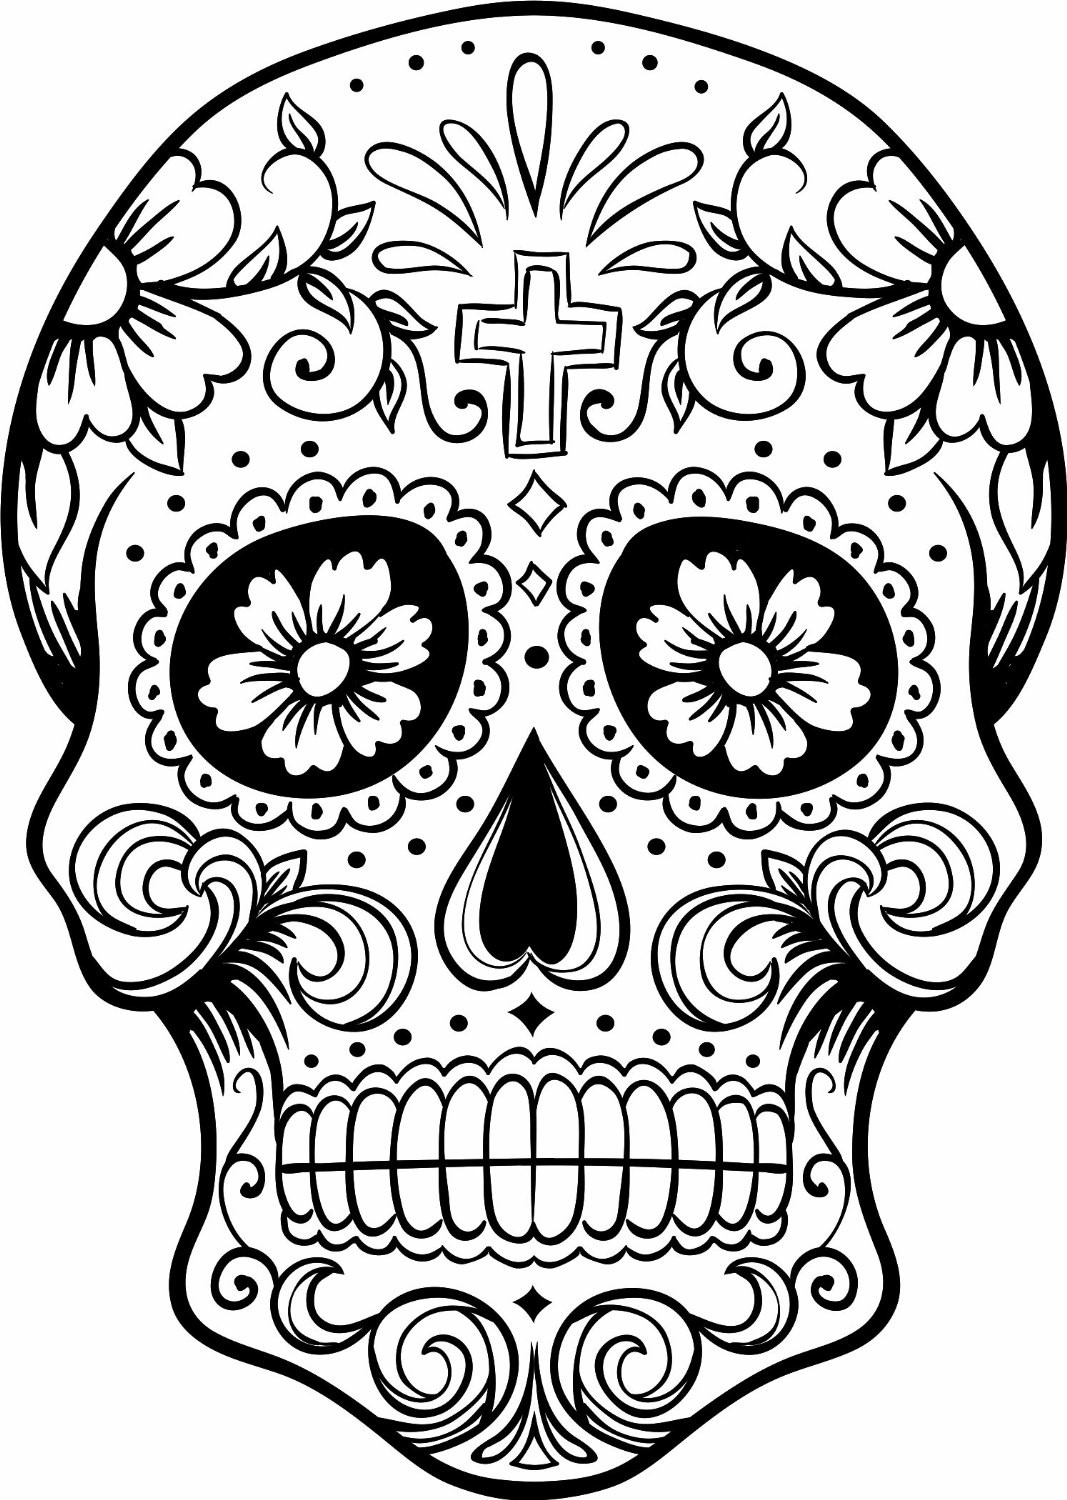 1067x1500 Dia De Los Muertos (Day Of The Dead) News@metro